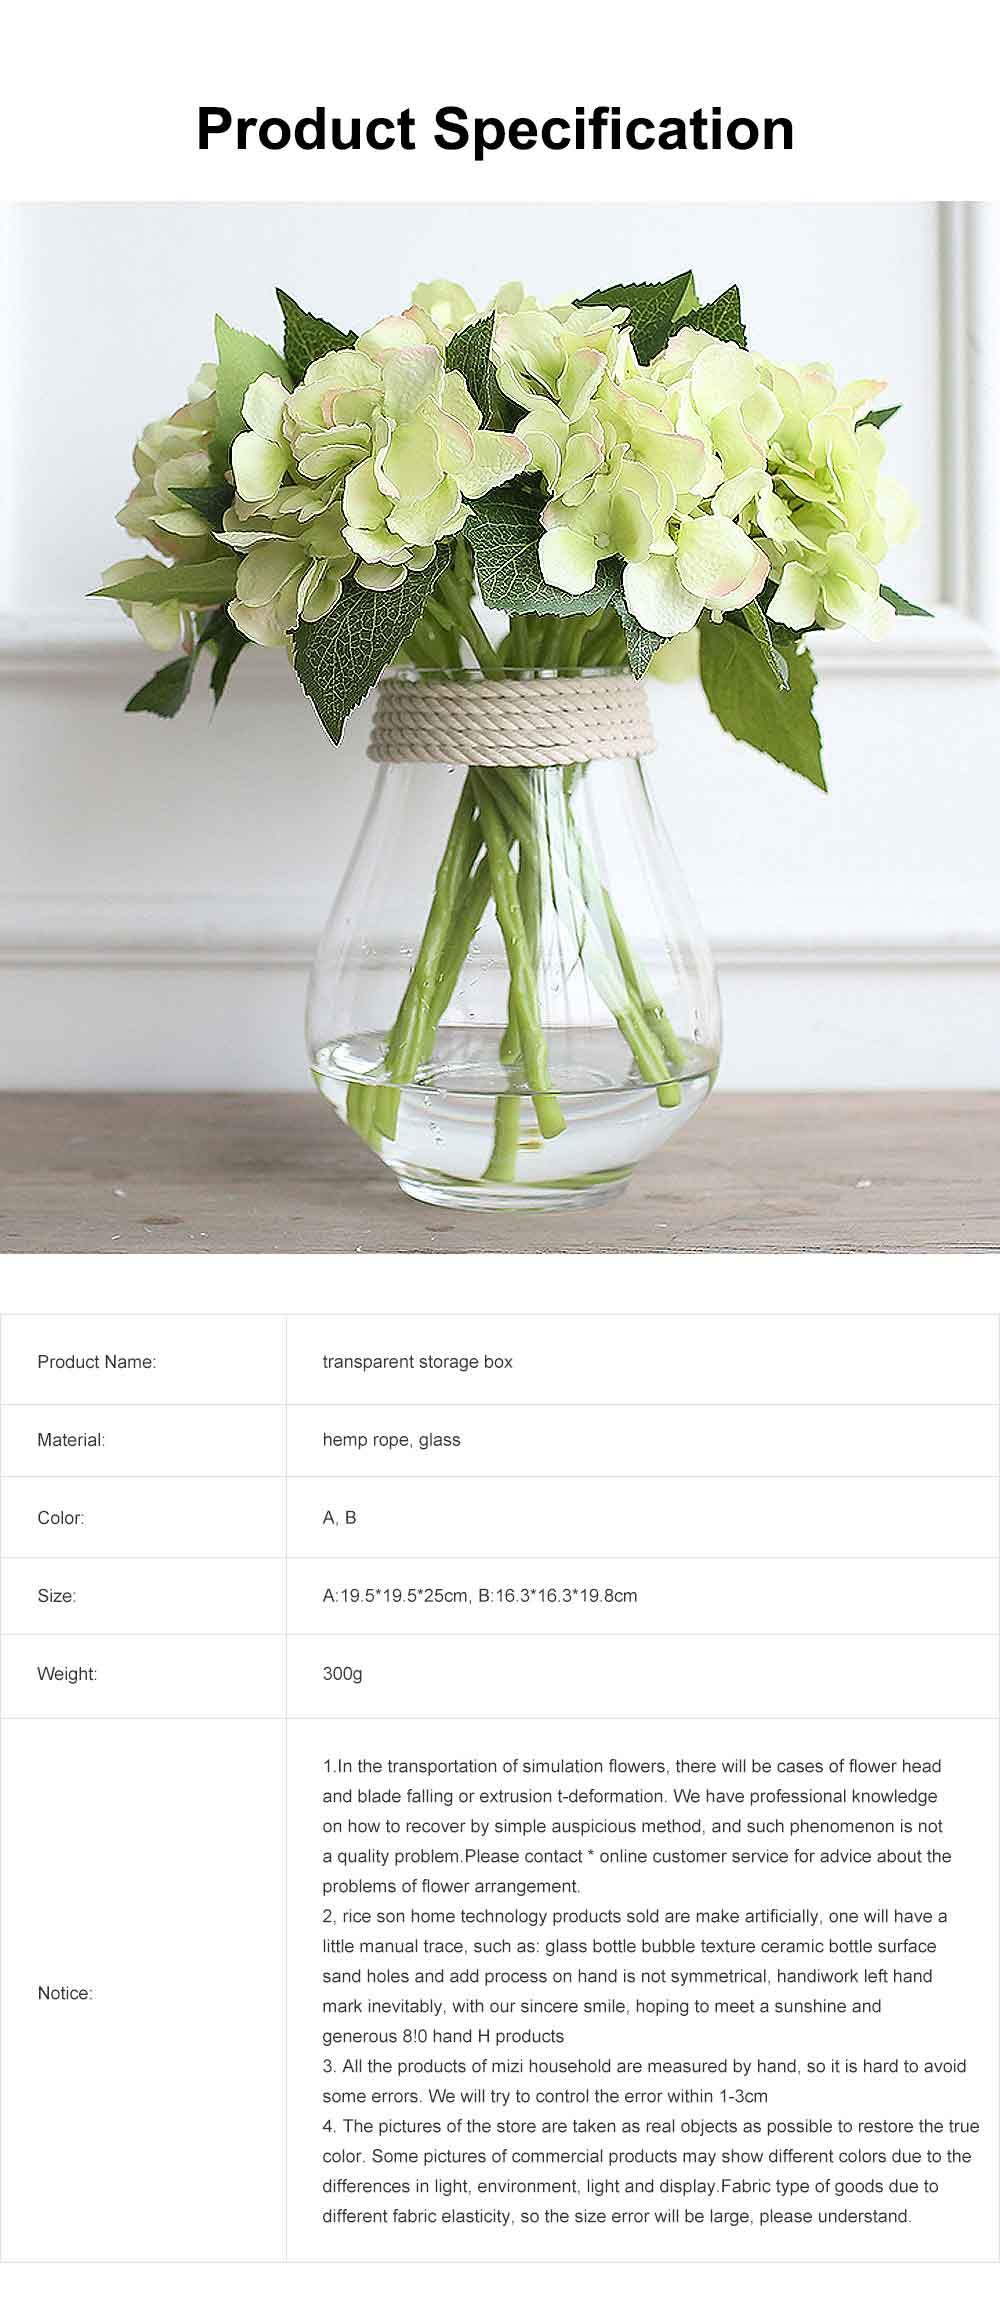 Transparent Glass Vase With Hemp Rope, Household Furnishings Decorative Vase 5